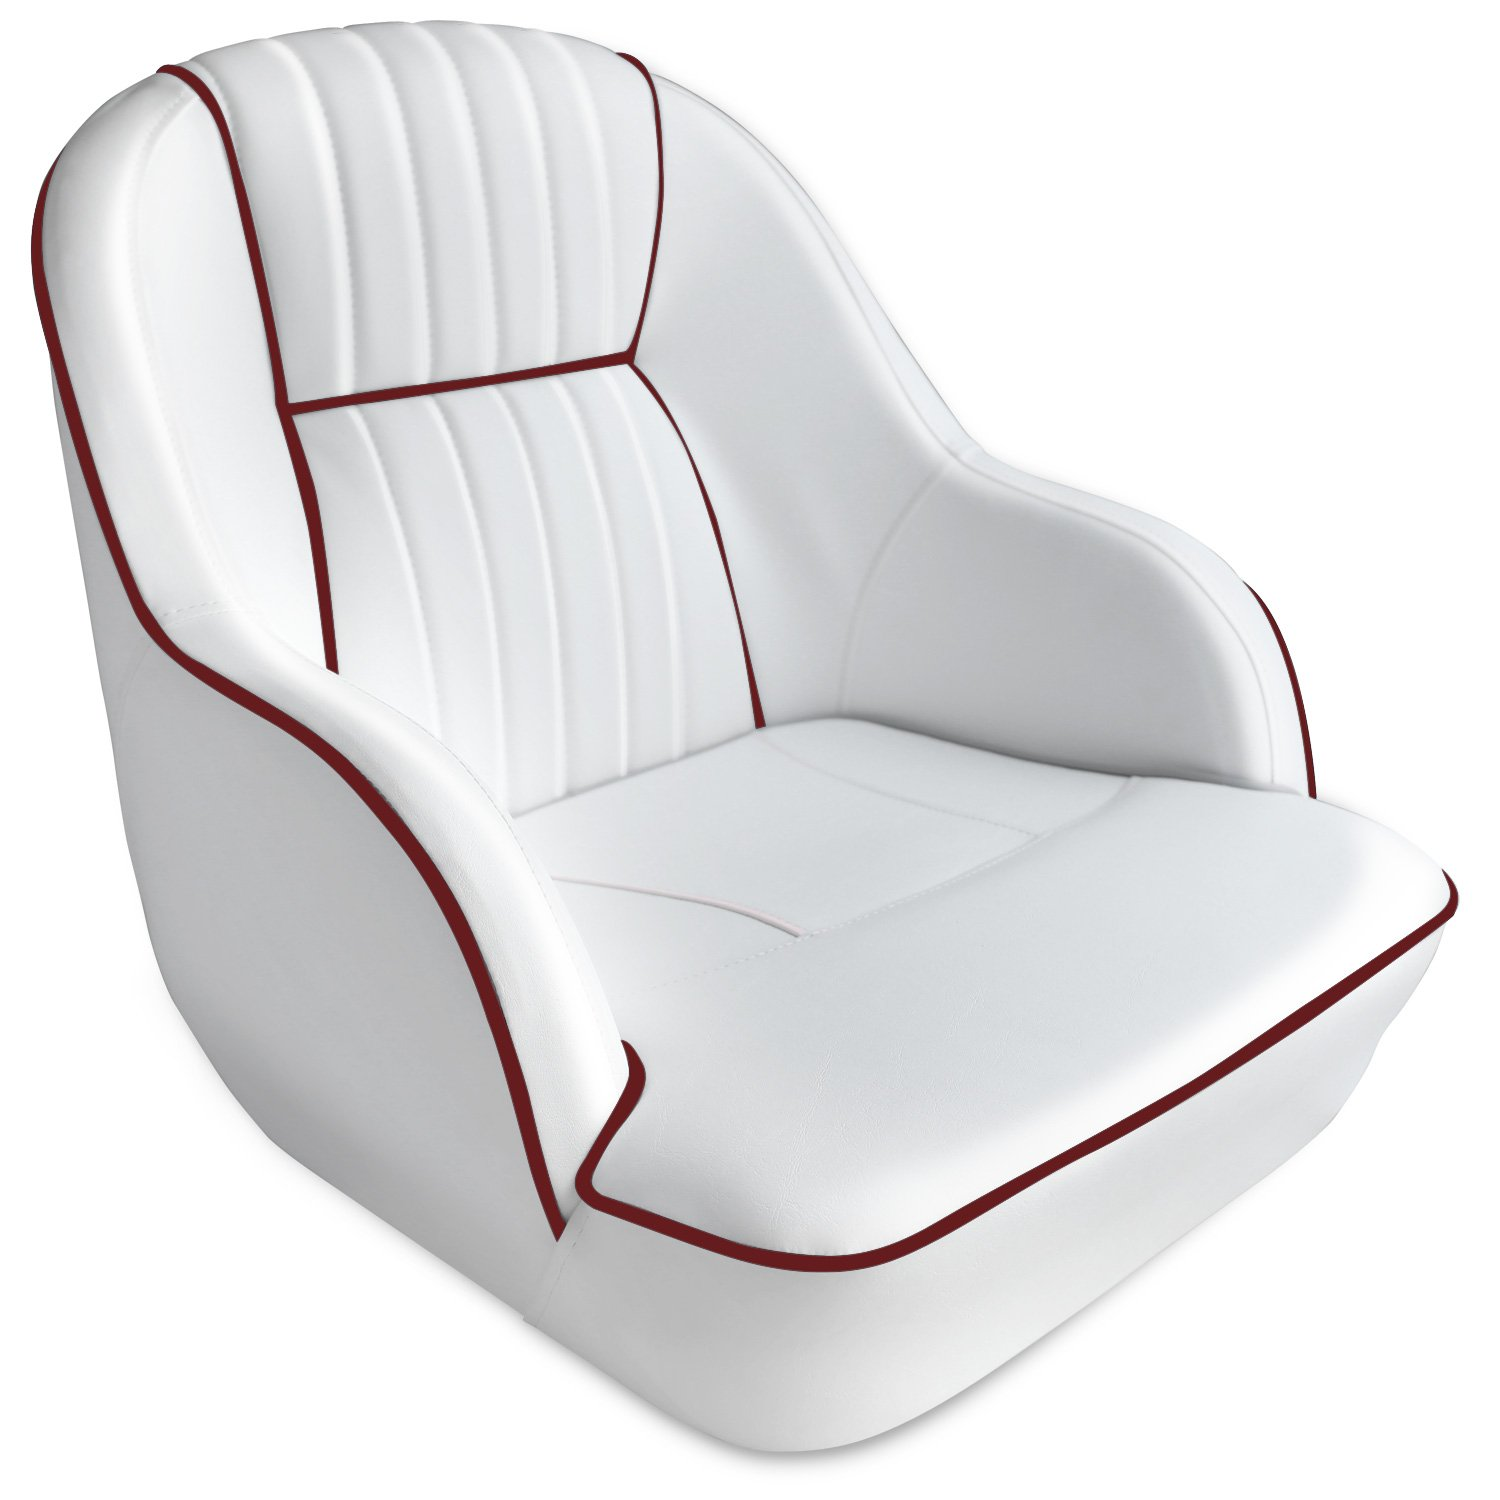 Leader Accessories Pontoon Captains Bucket Seat Boat Seat (White/Dark Red Piping) by Leader Accessories